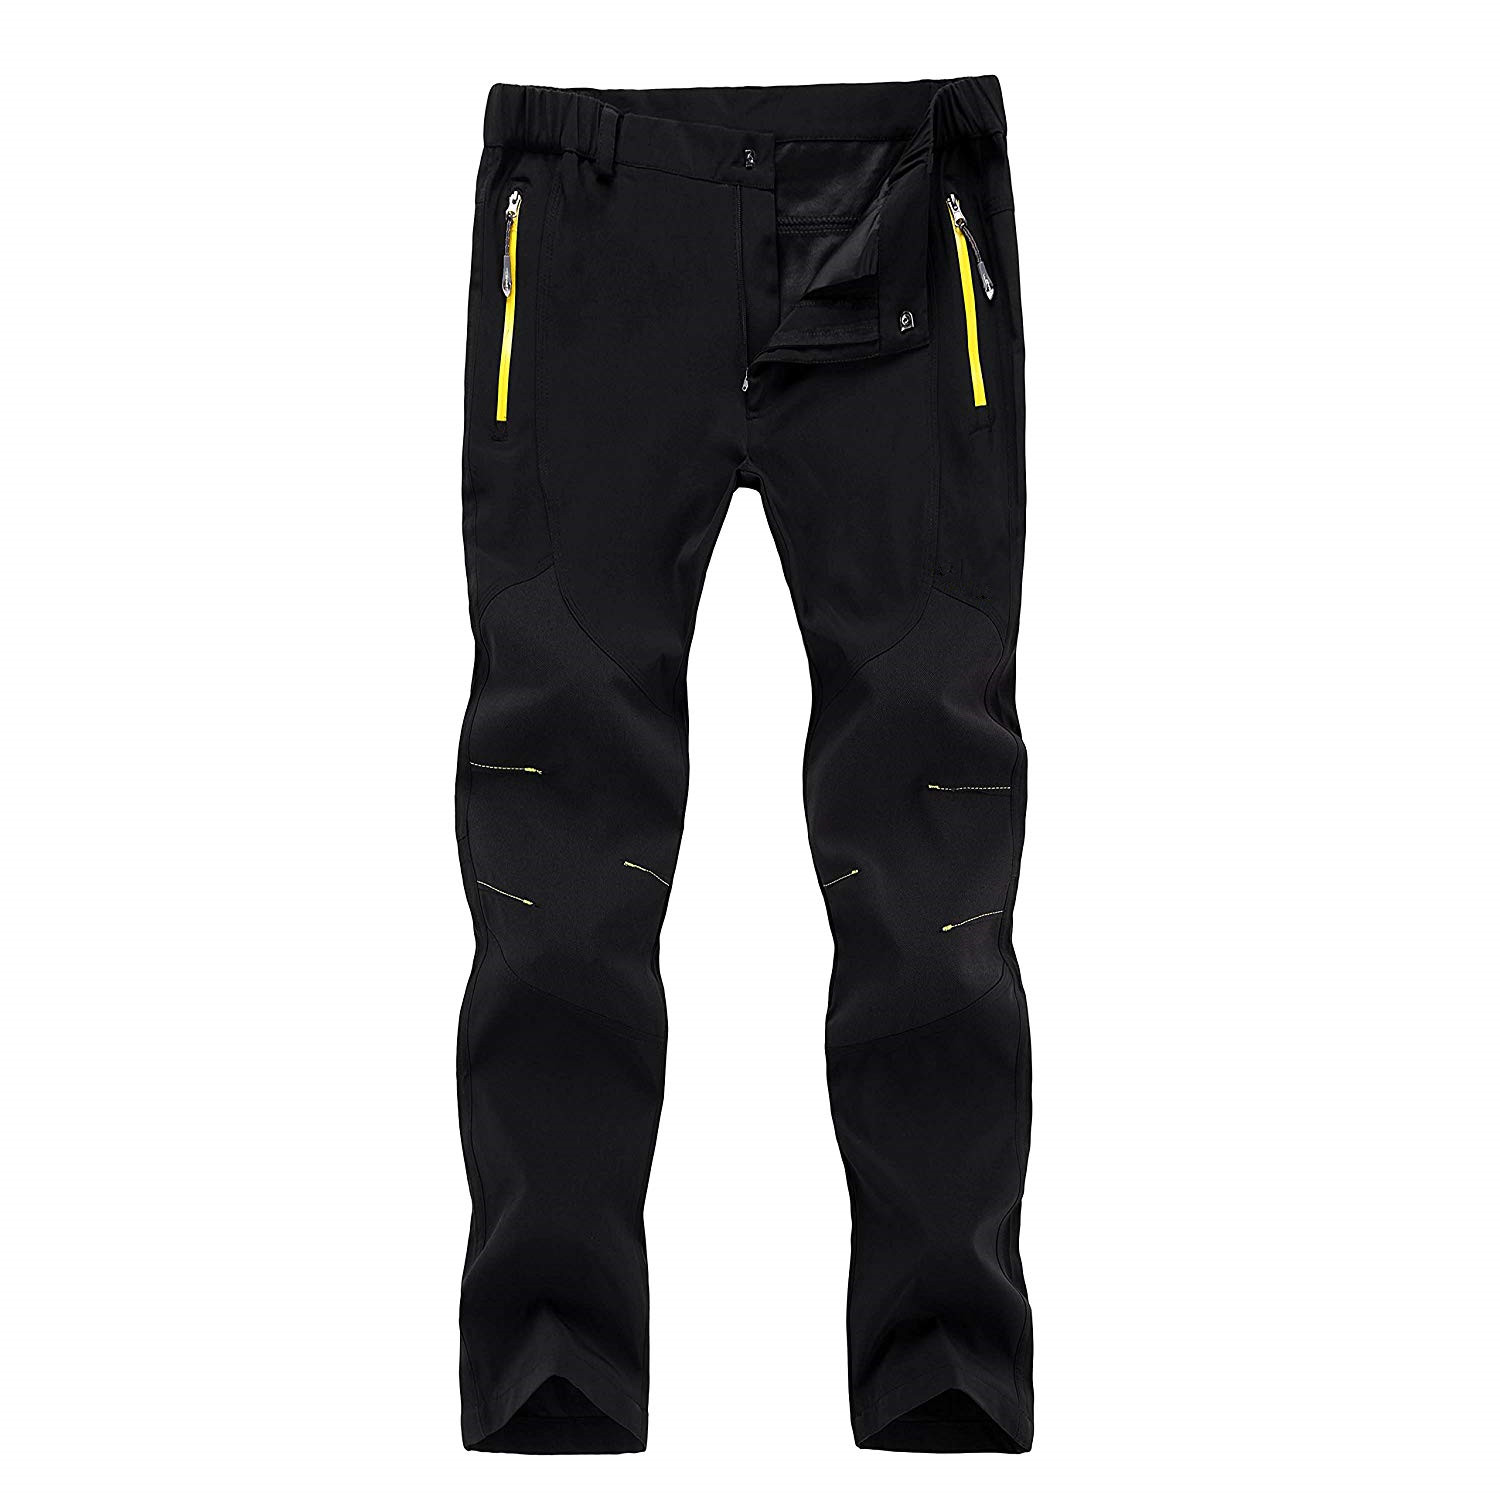 mens zip off walking trousers.jpg